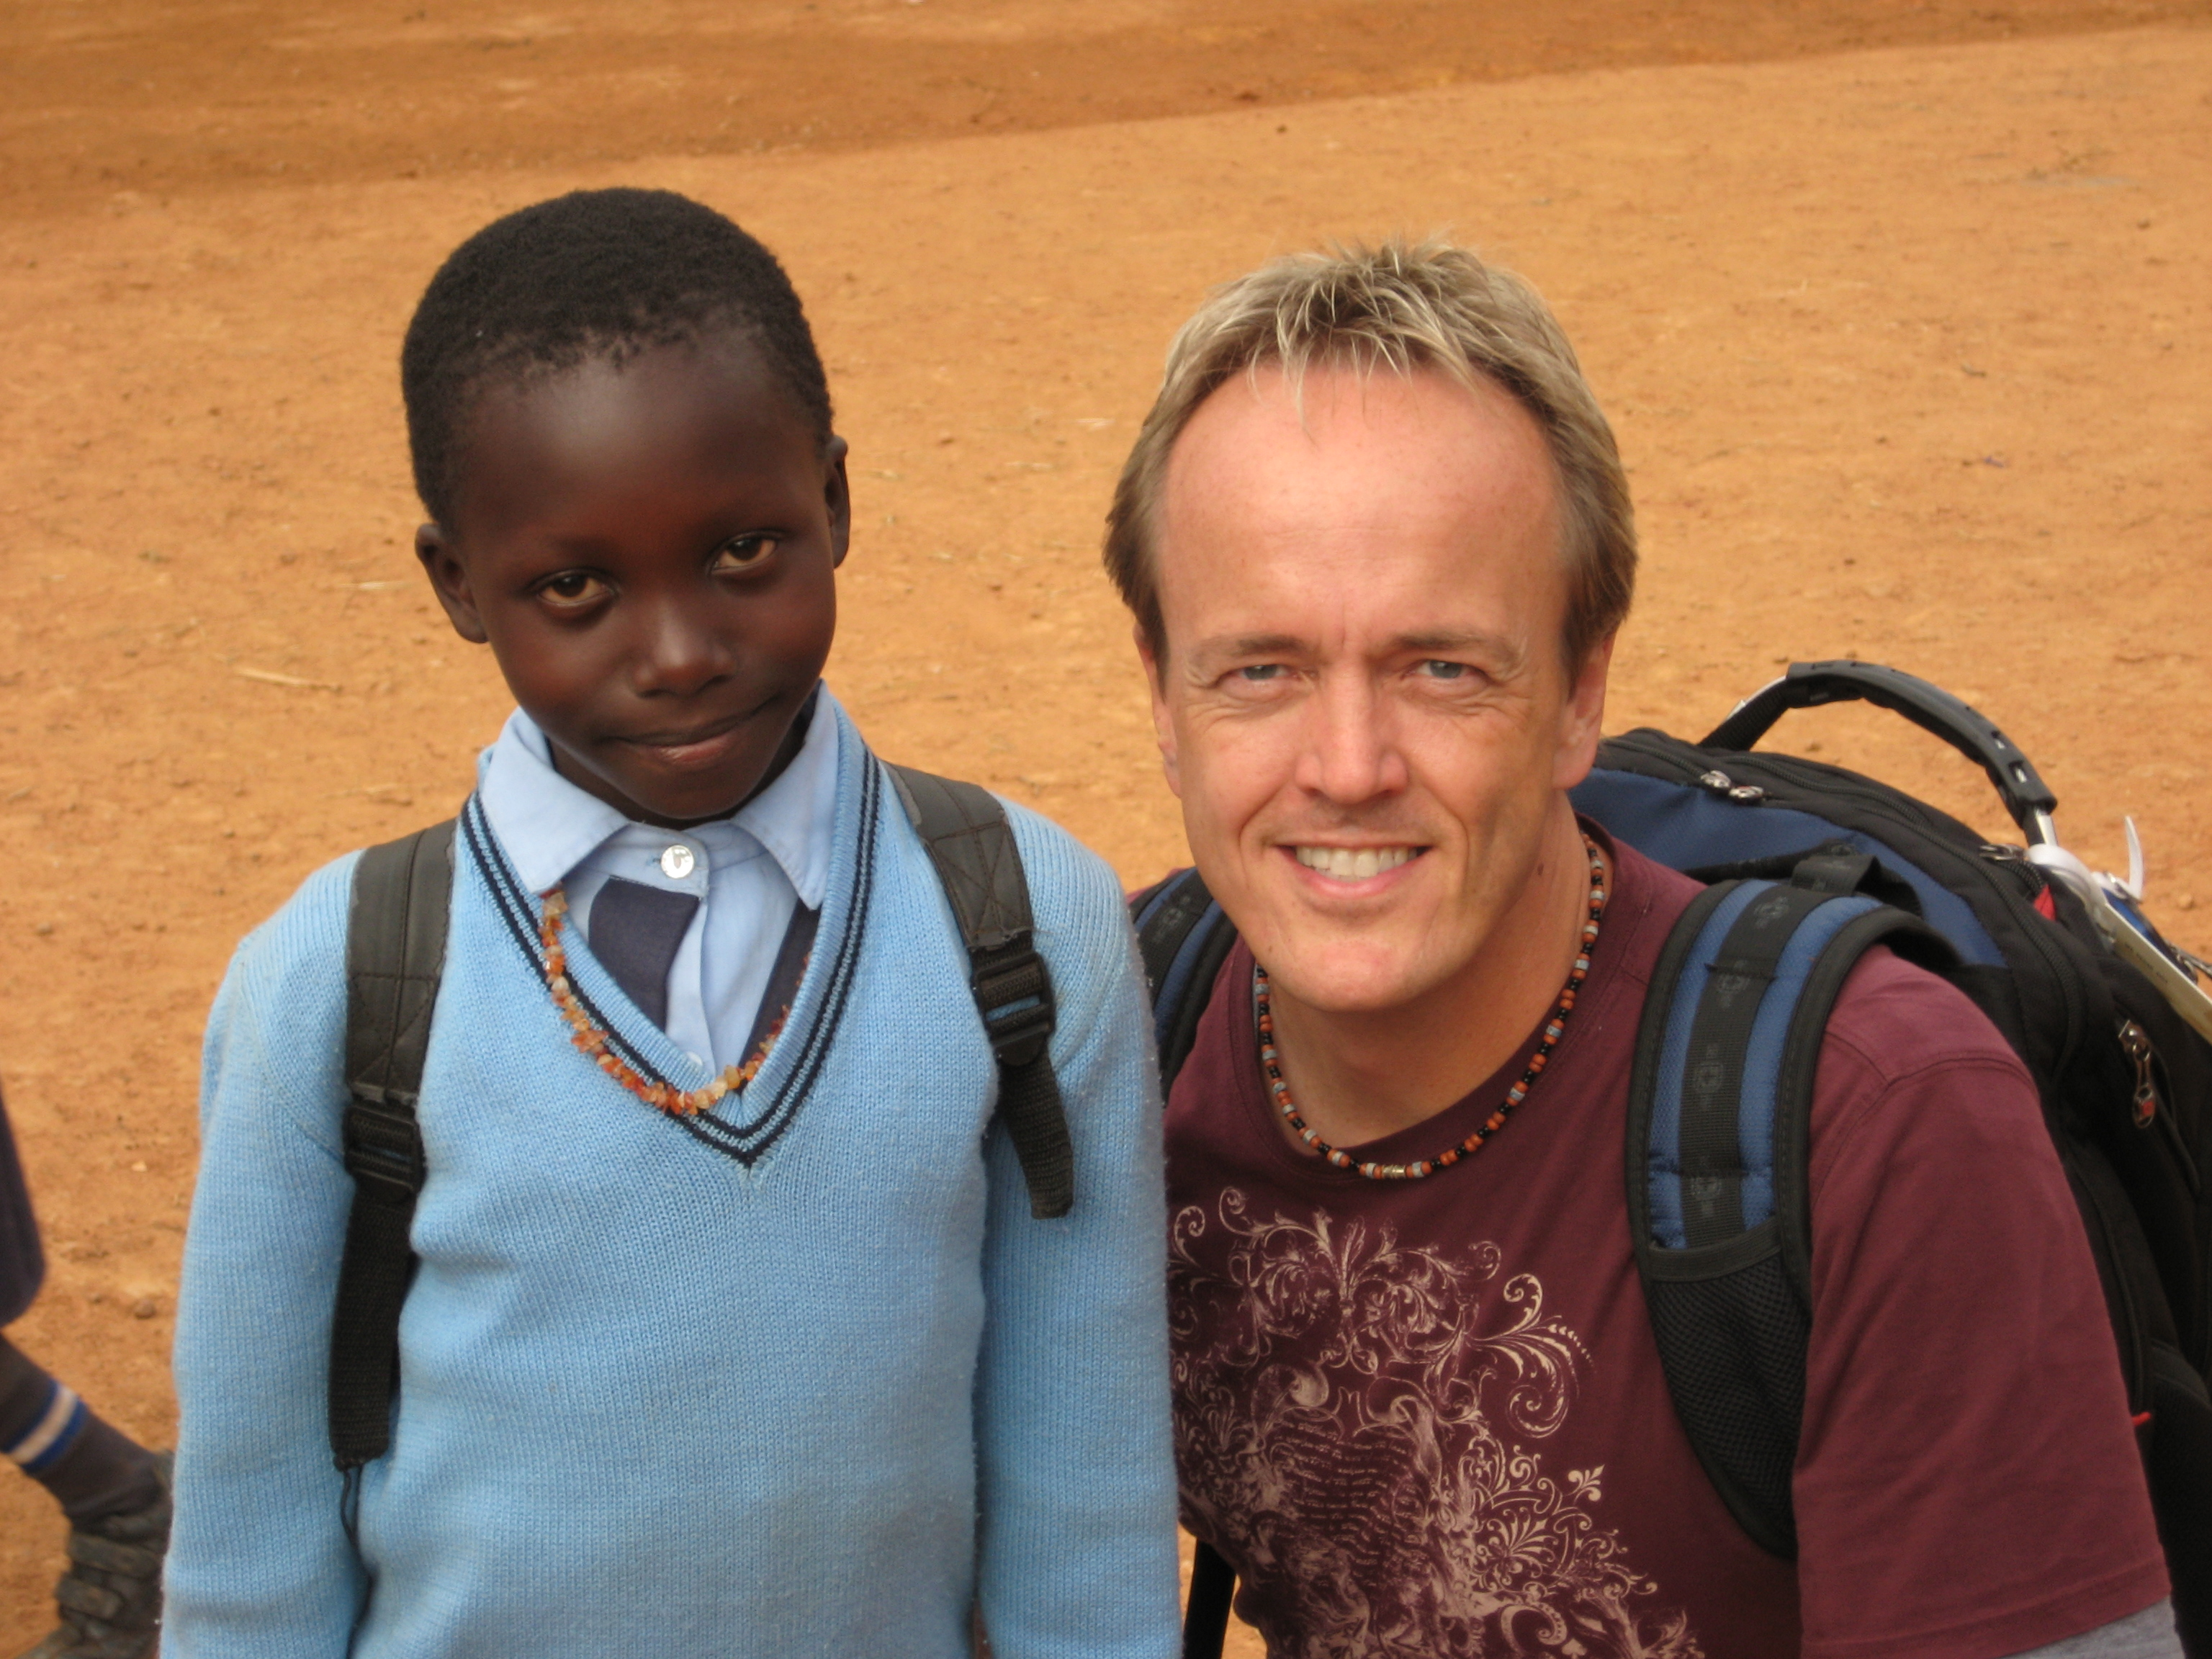 Me and one of our sponsored children Ziana in Uganda